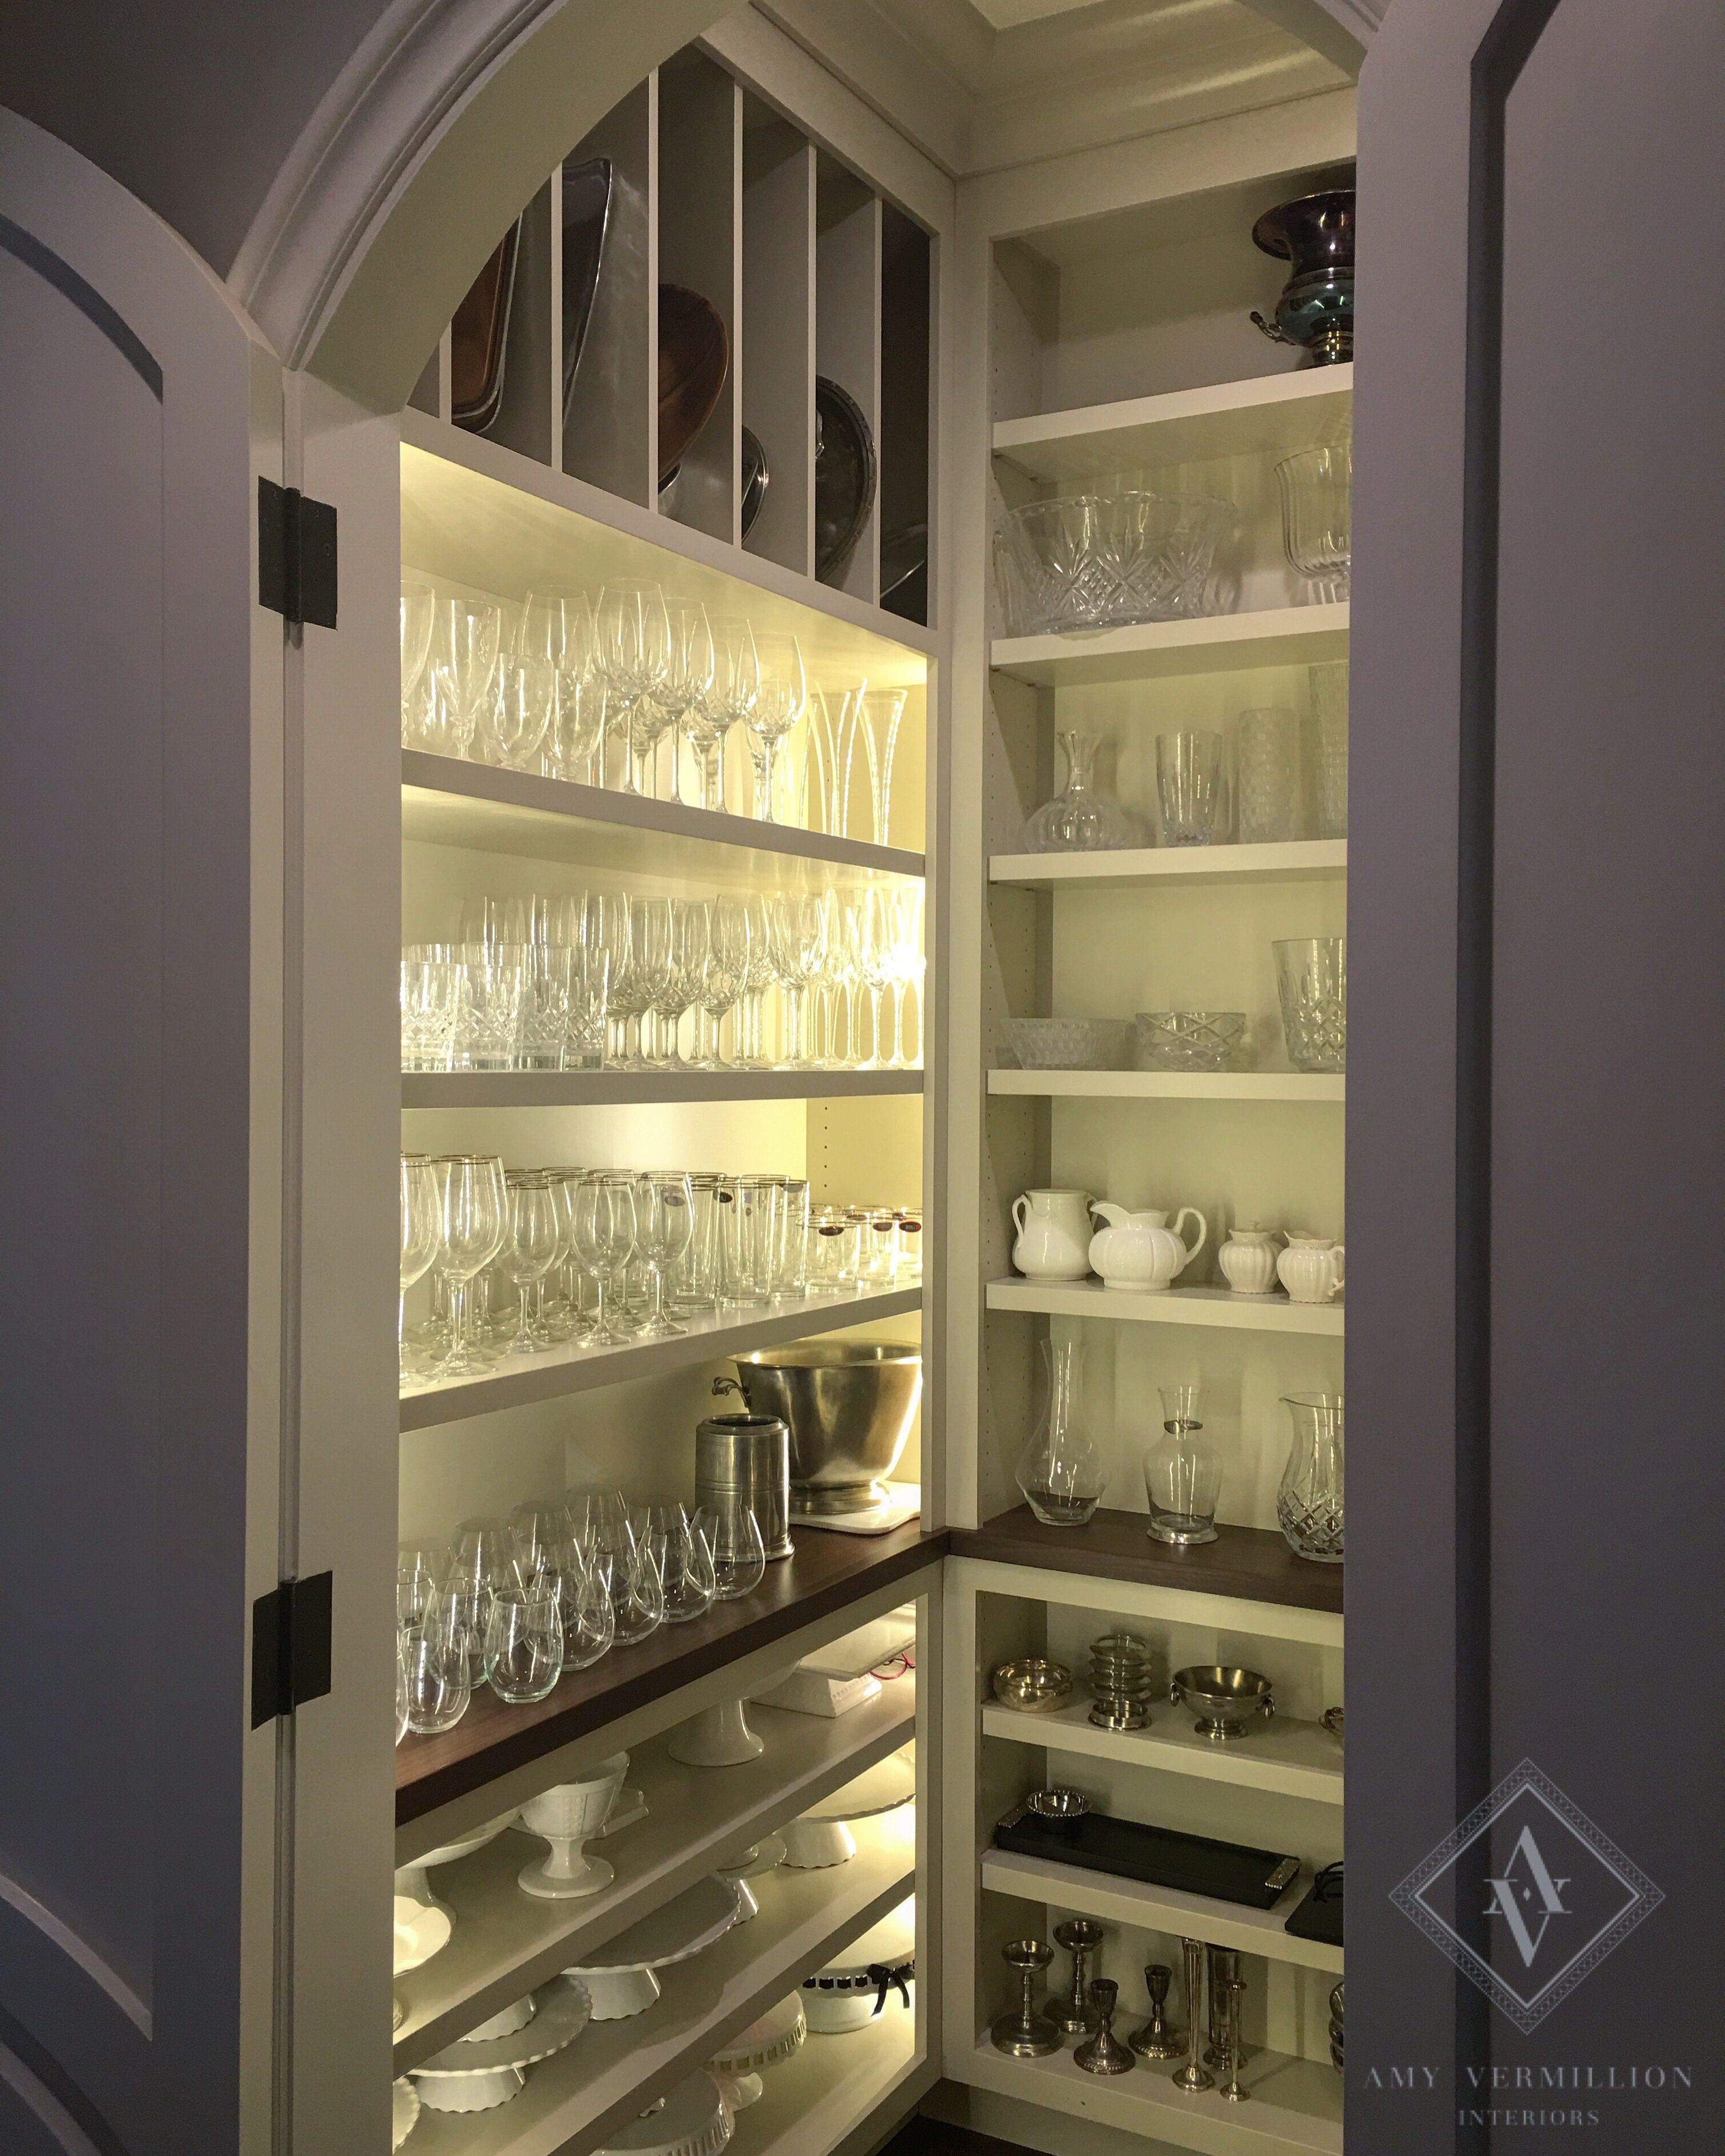 Schrank Waschküche Will Definitely Have A Pantry For Food And One For All My